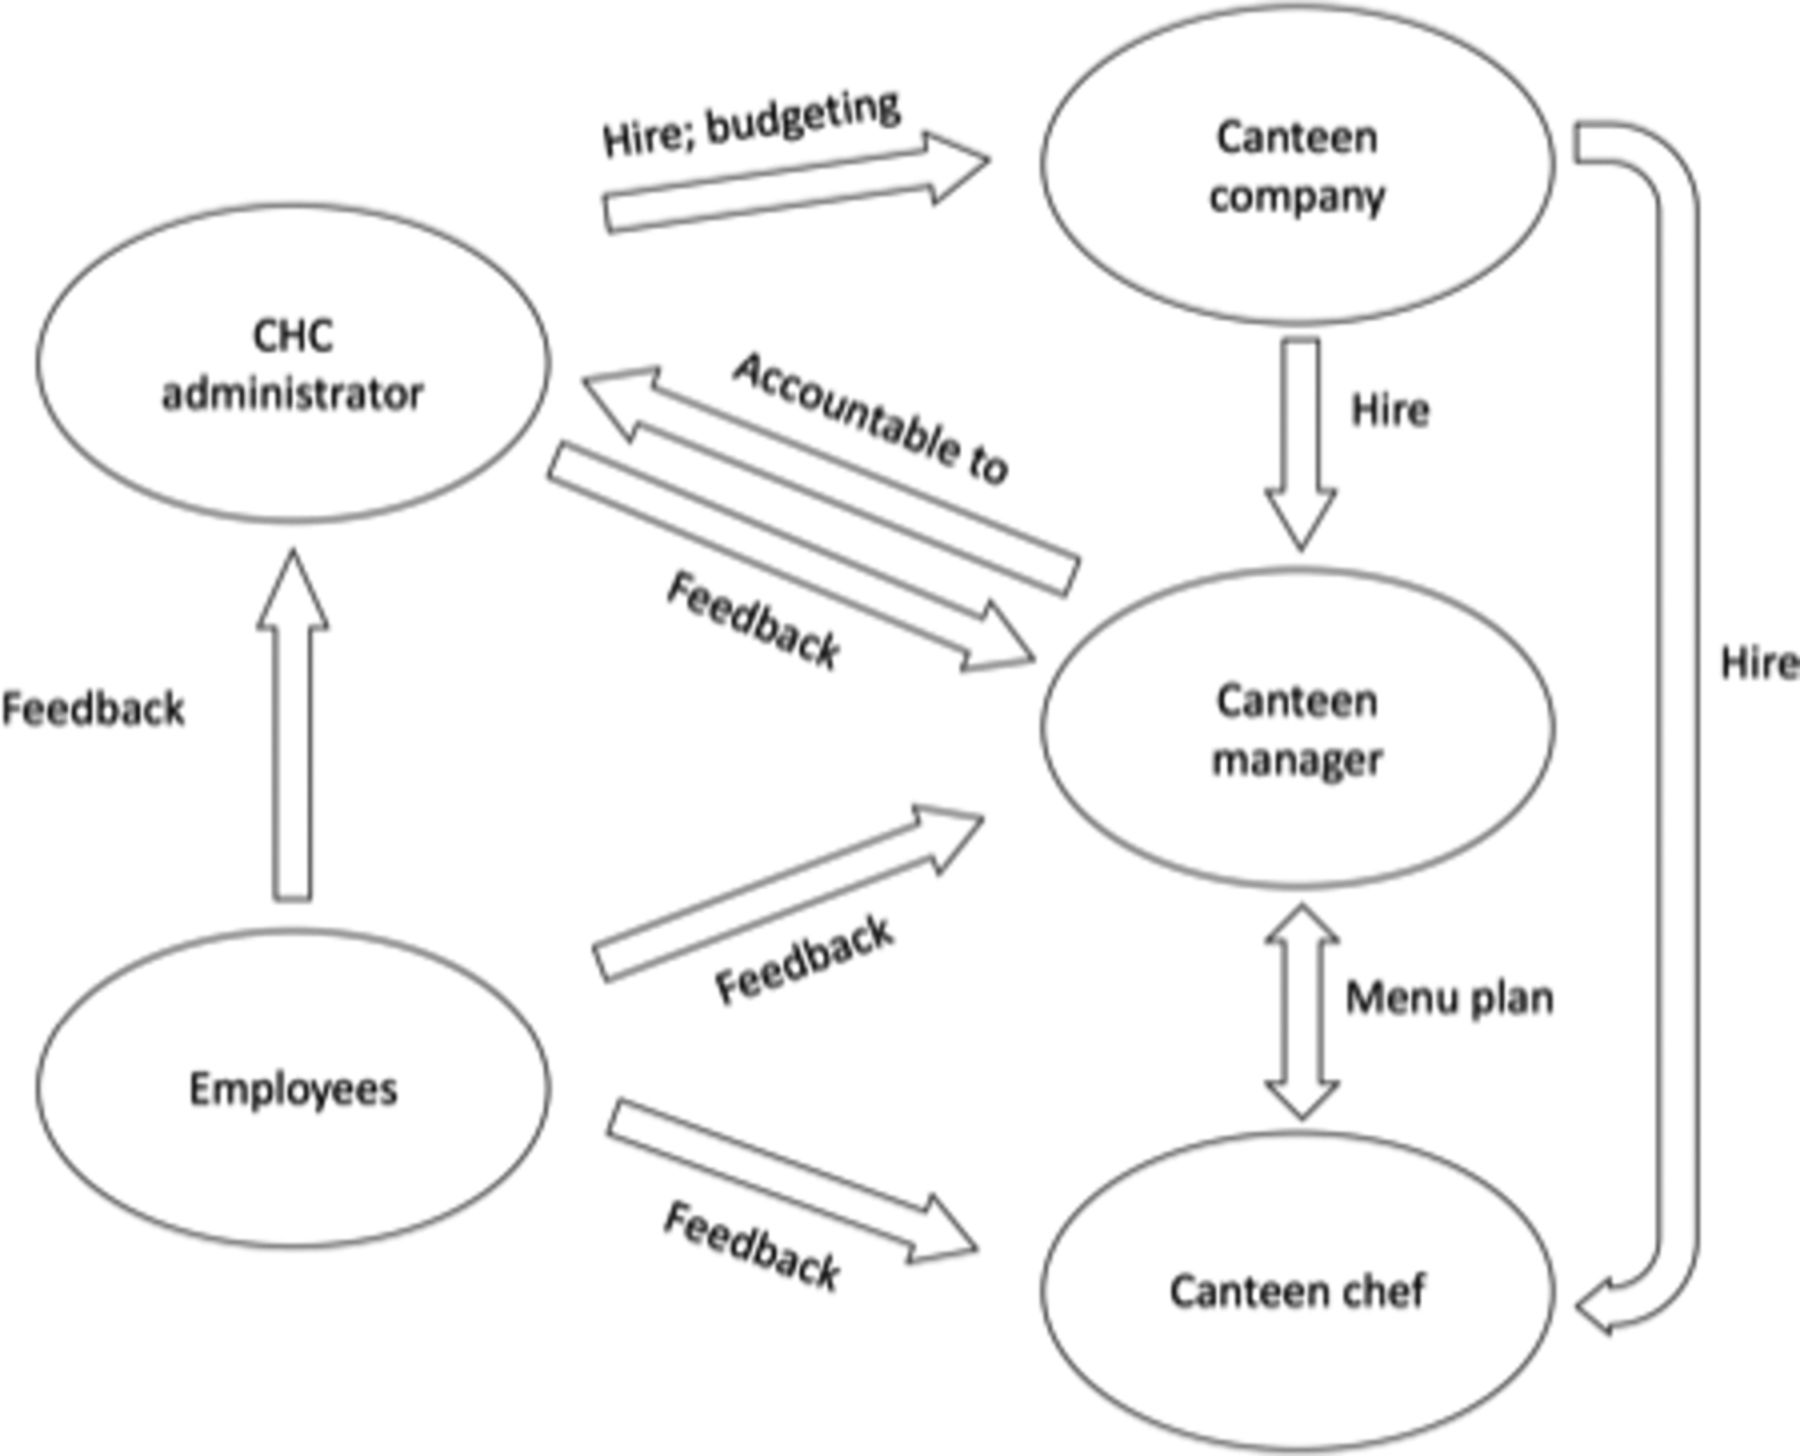 Enablers and barriers to improving worksite canteen